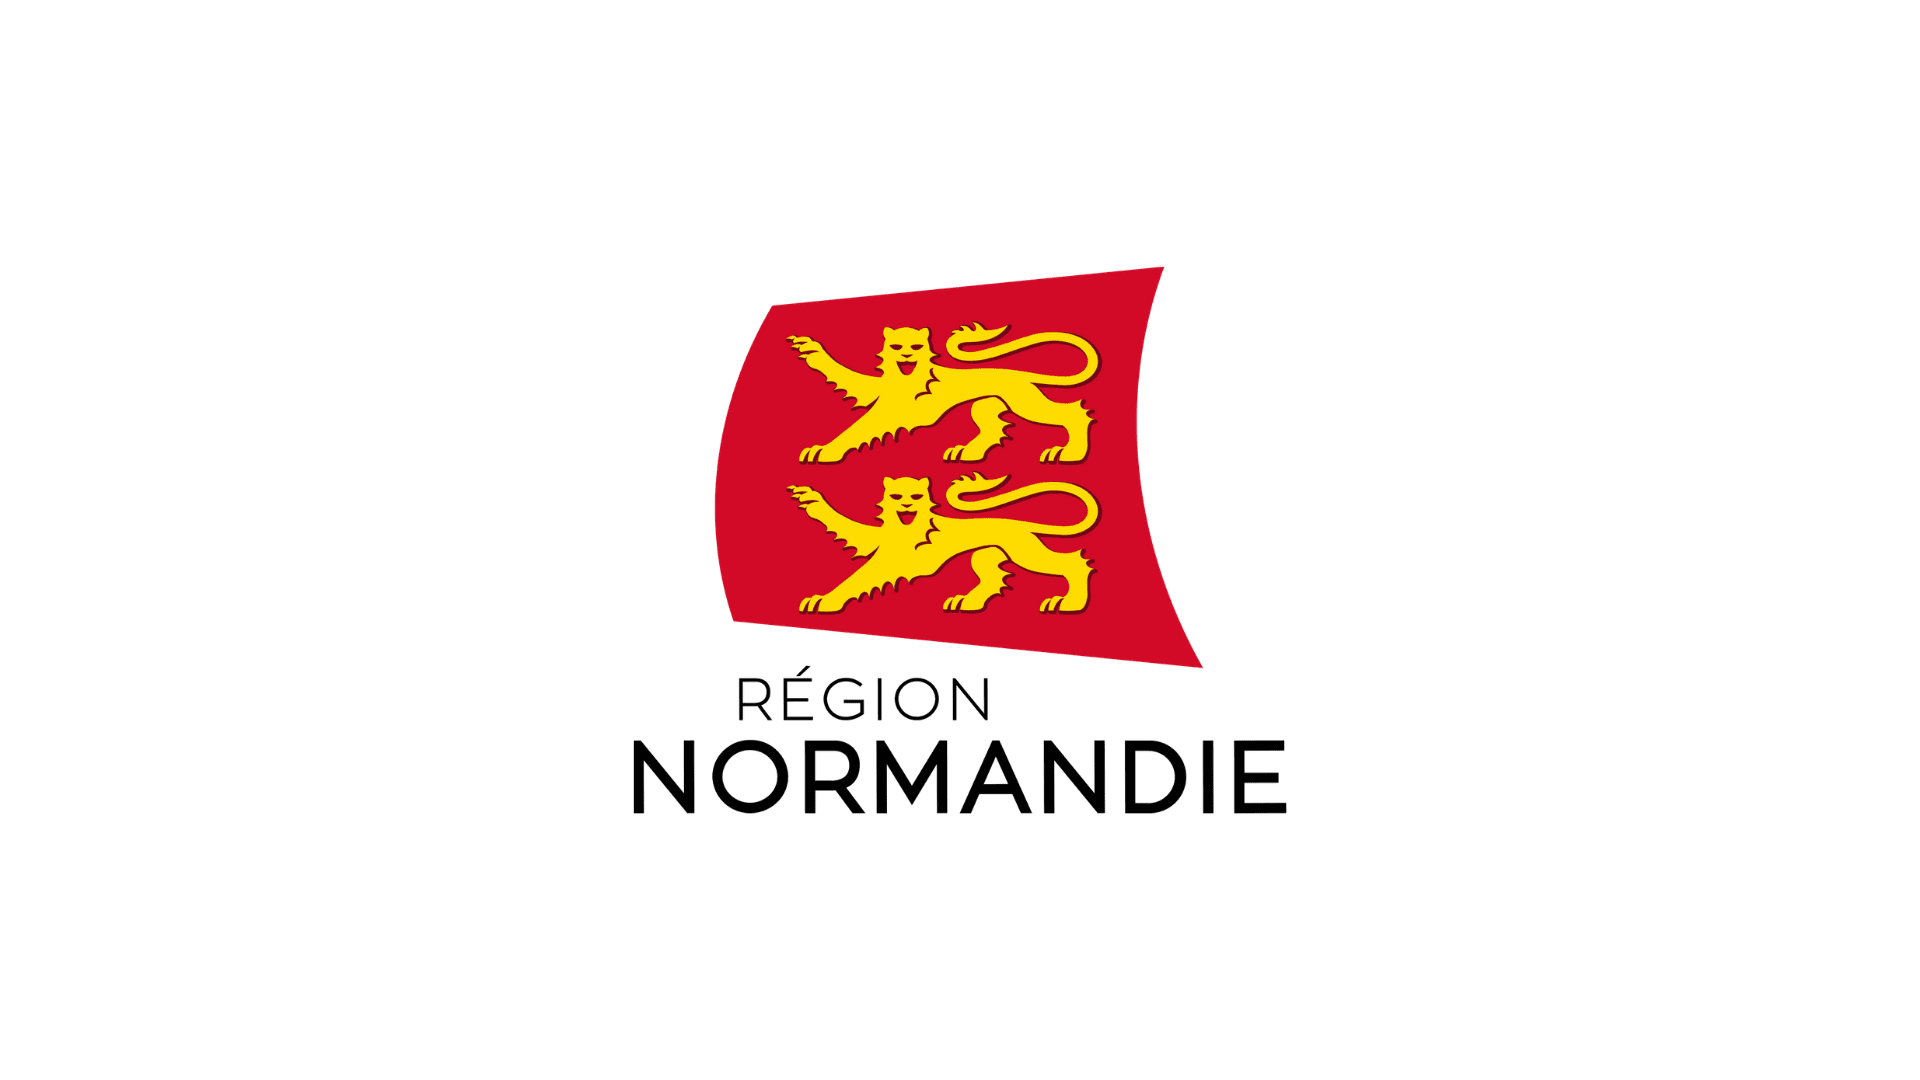 PREFECTURE OF NORMANDY REGION